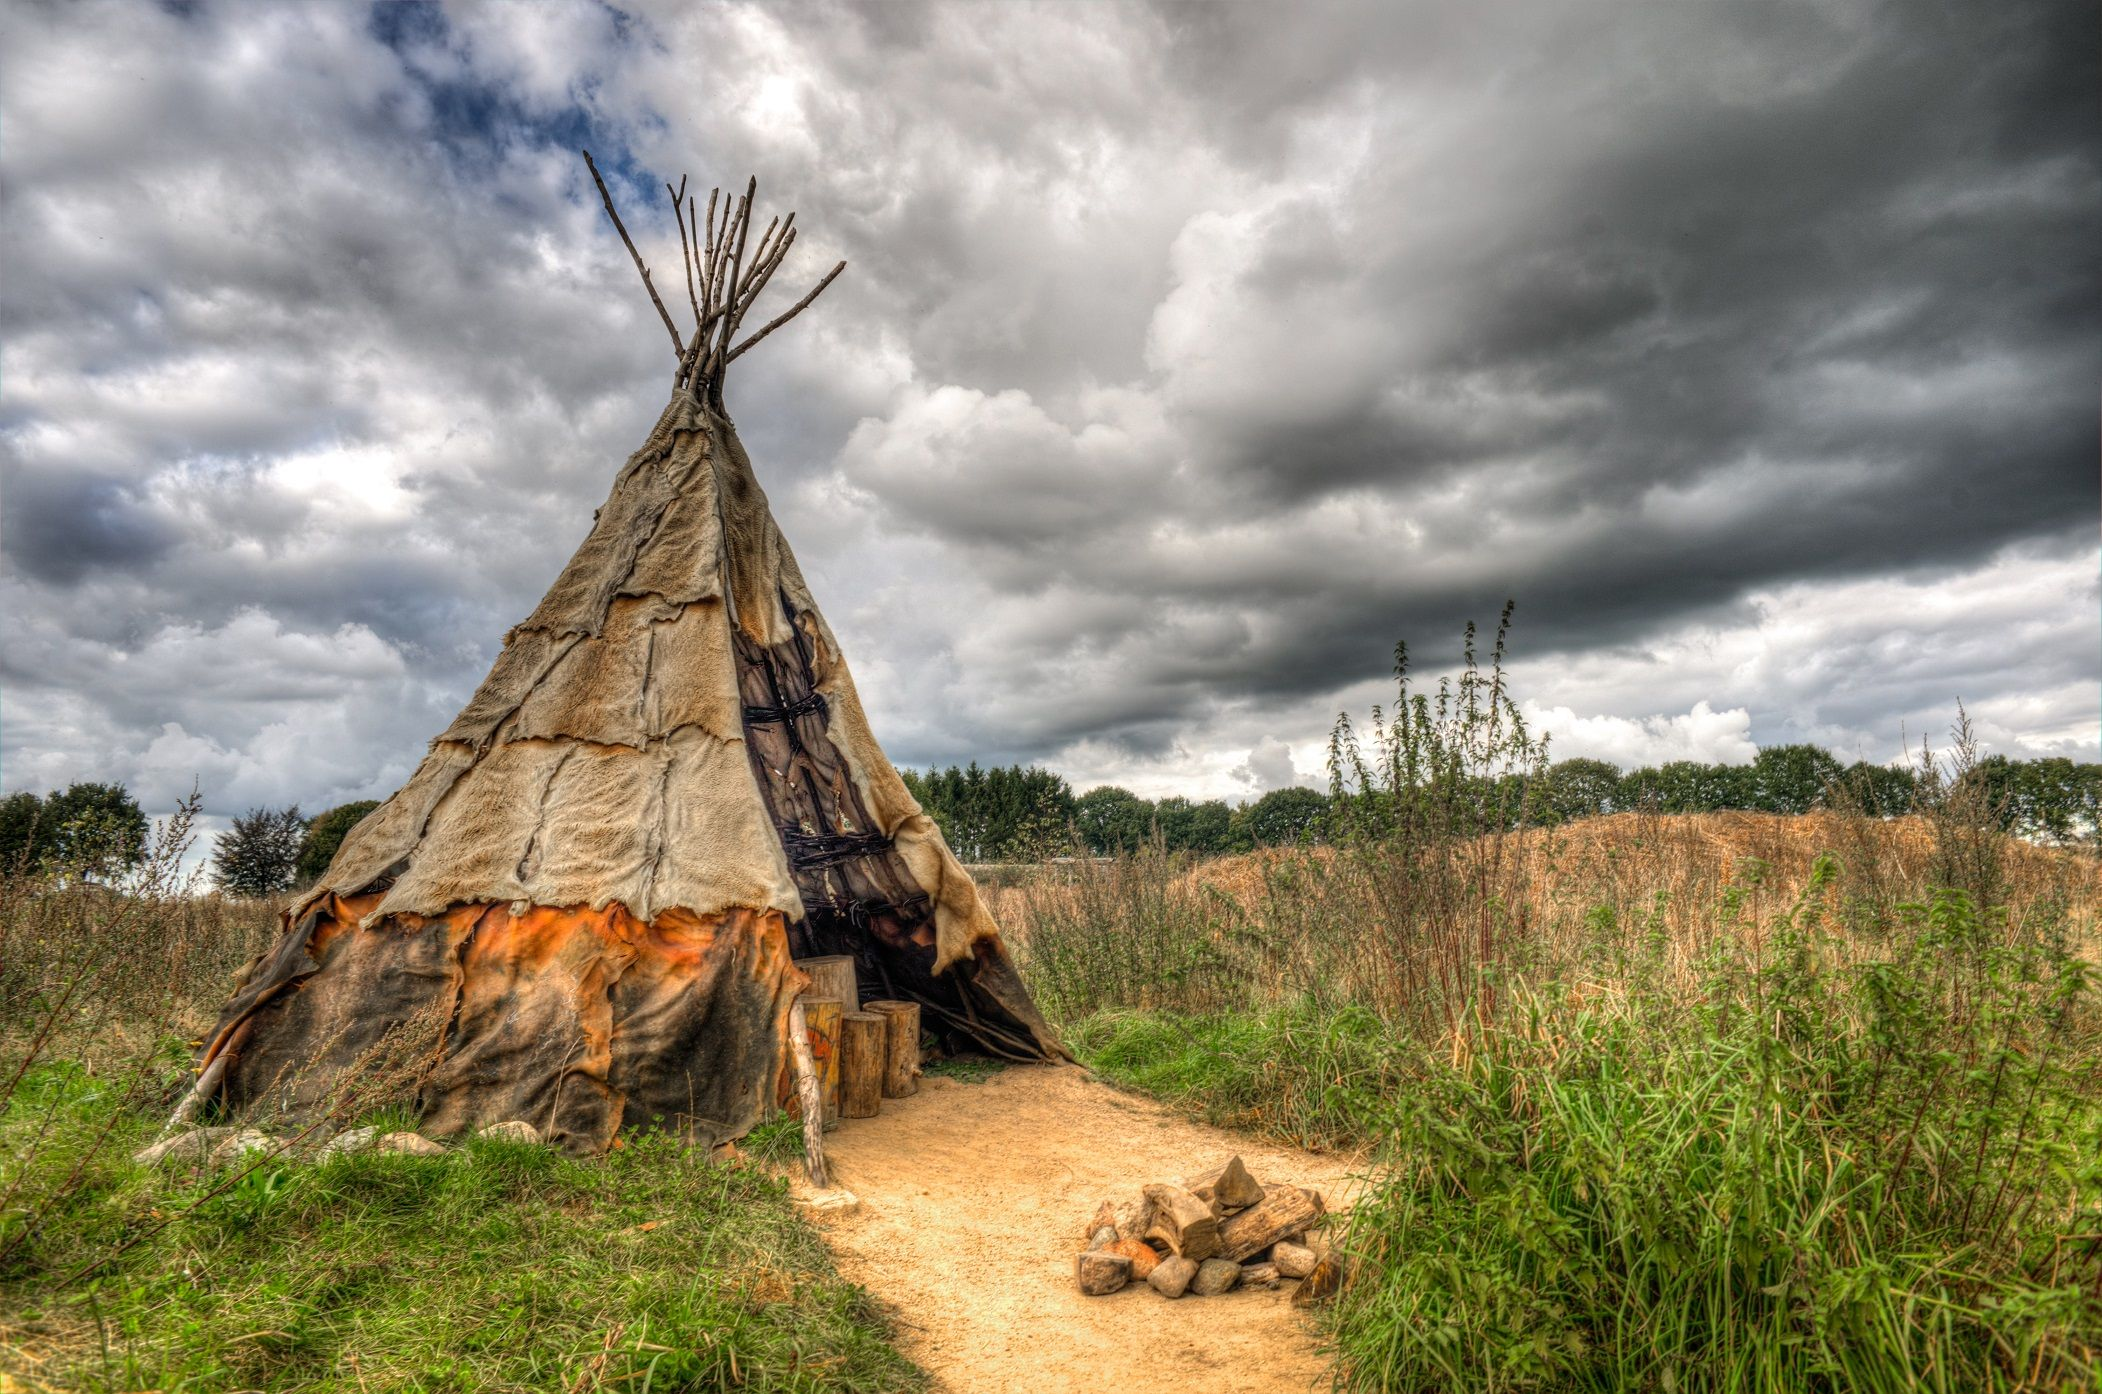 2102x1394 Native American Tipi or teepee covered with animal skins Full HD ...